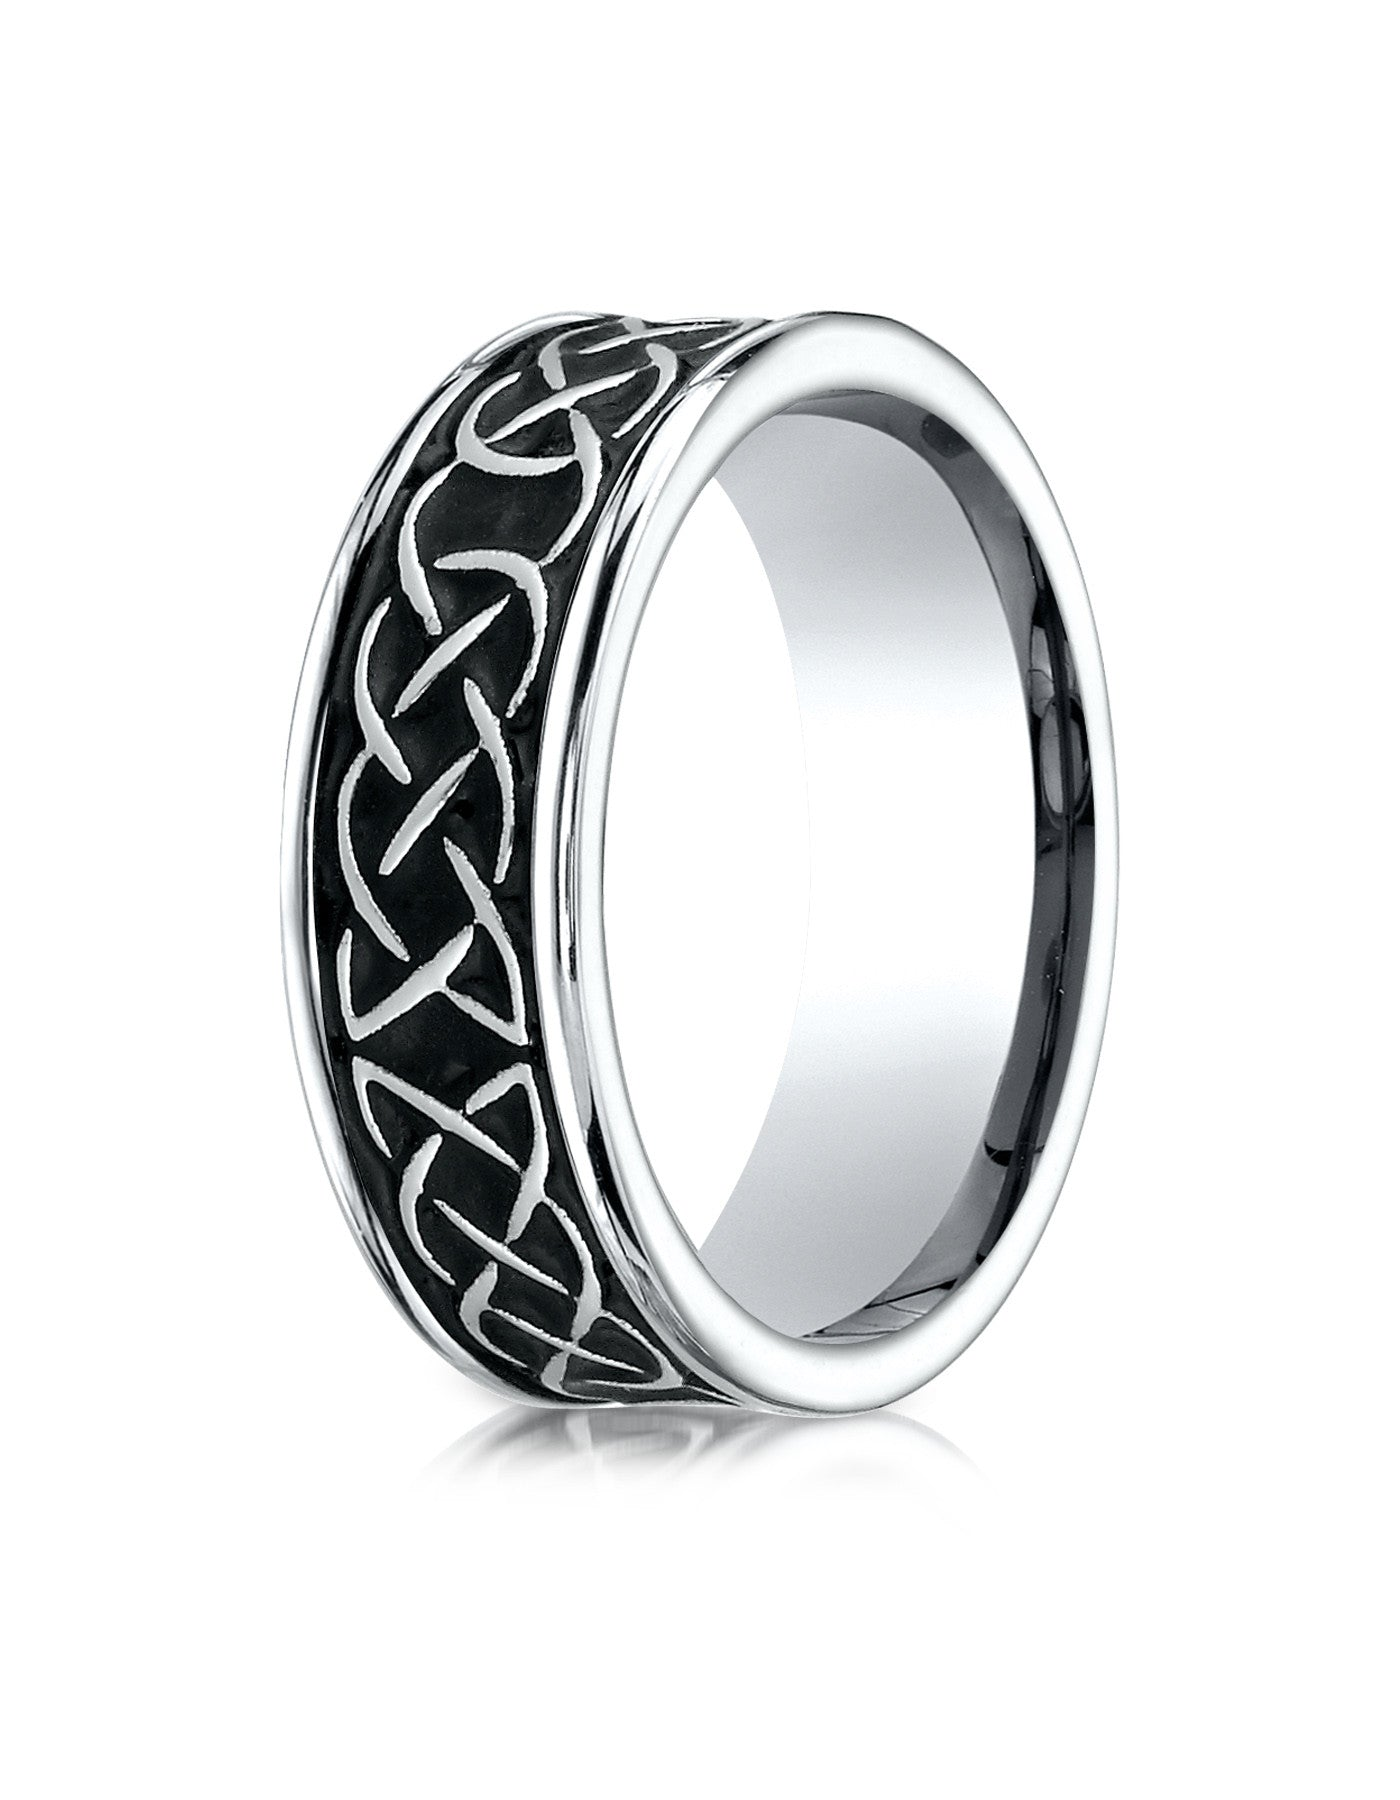 DUNDEE Cobalt Celtic Knot Wedding Band for Men by Benchmark